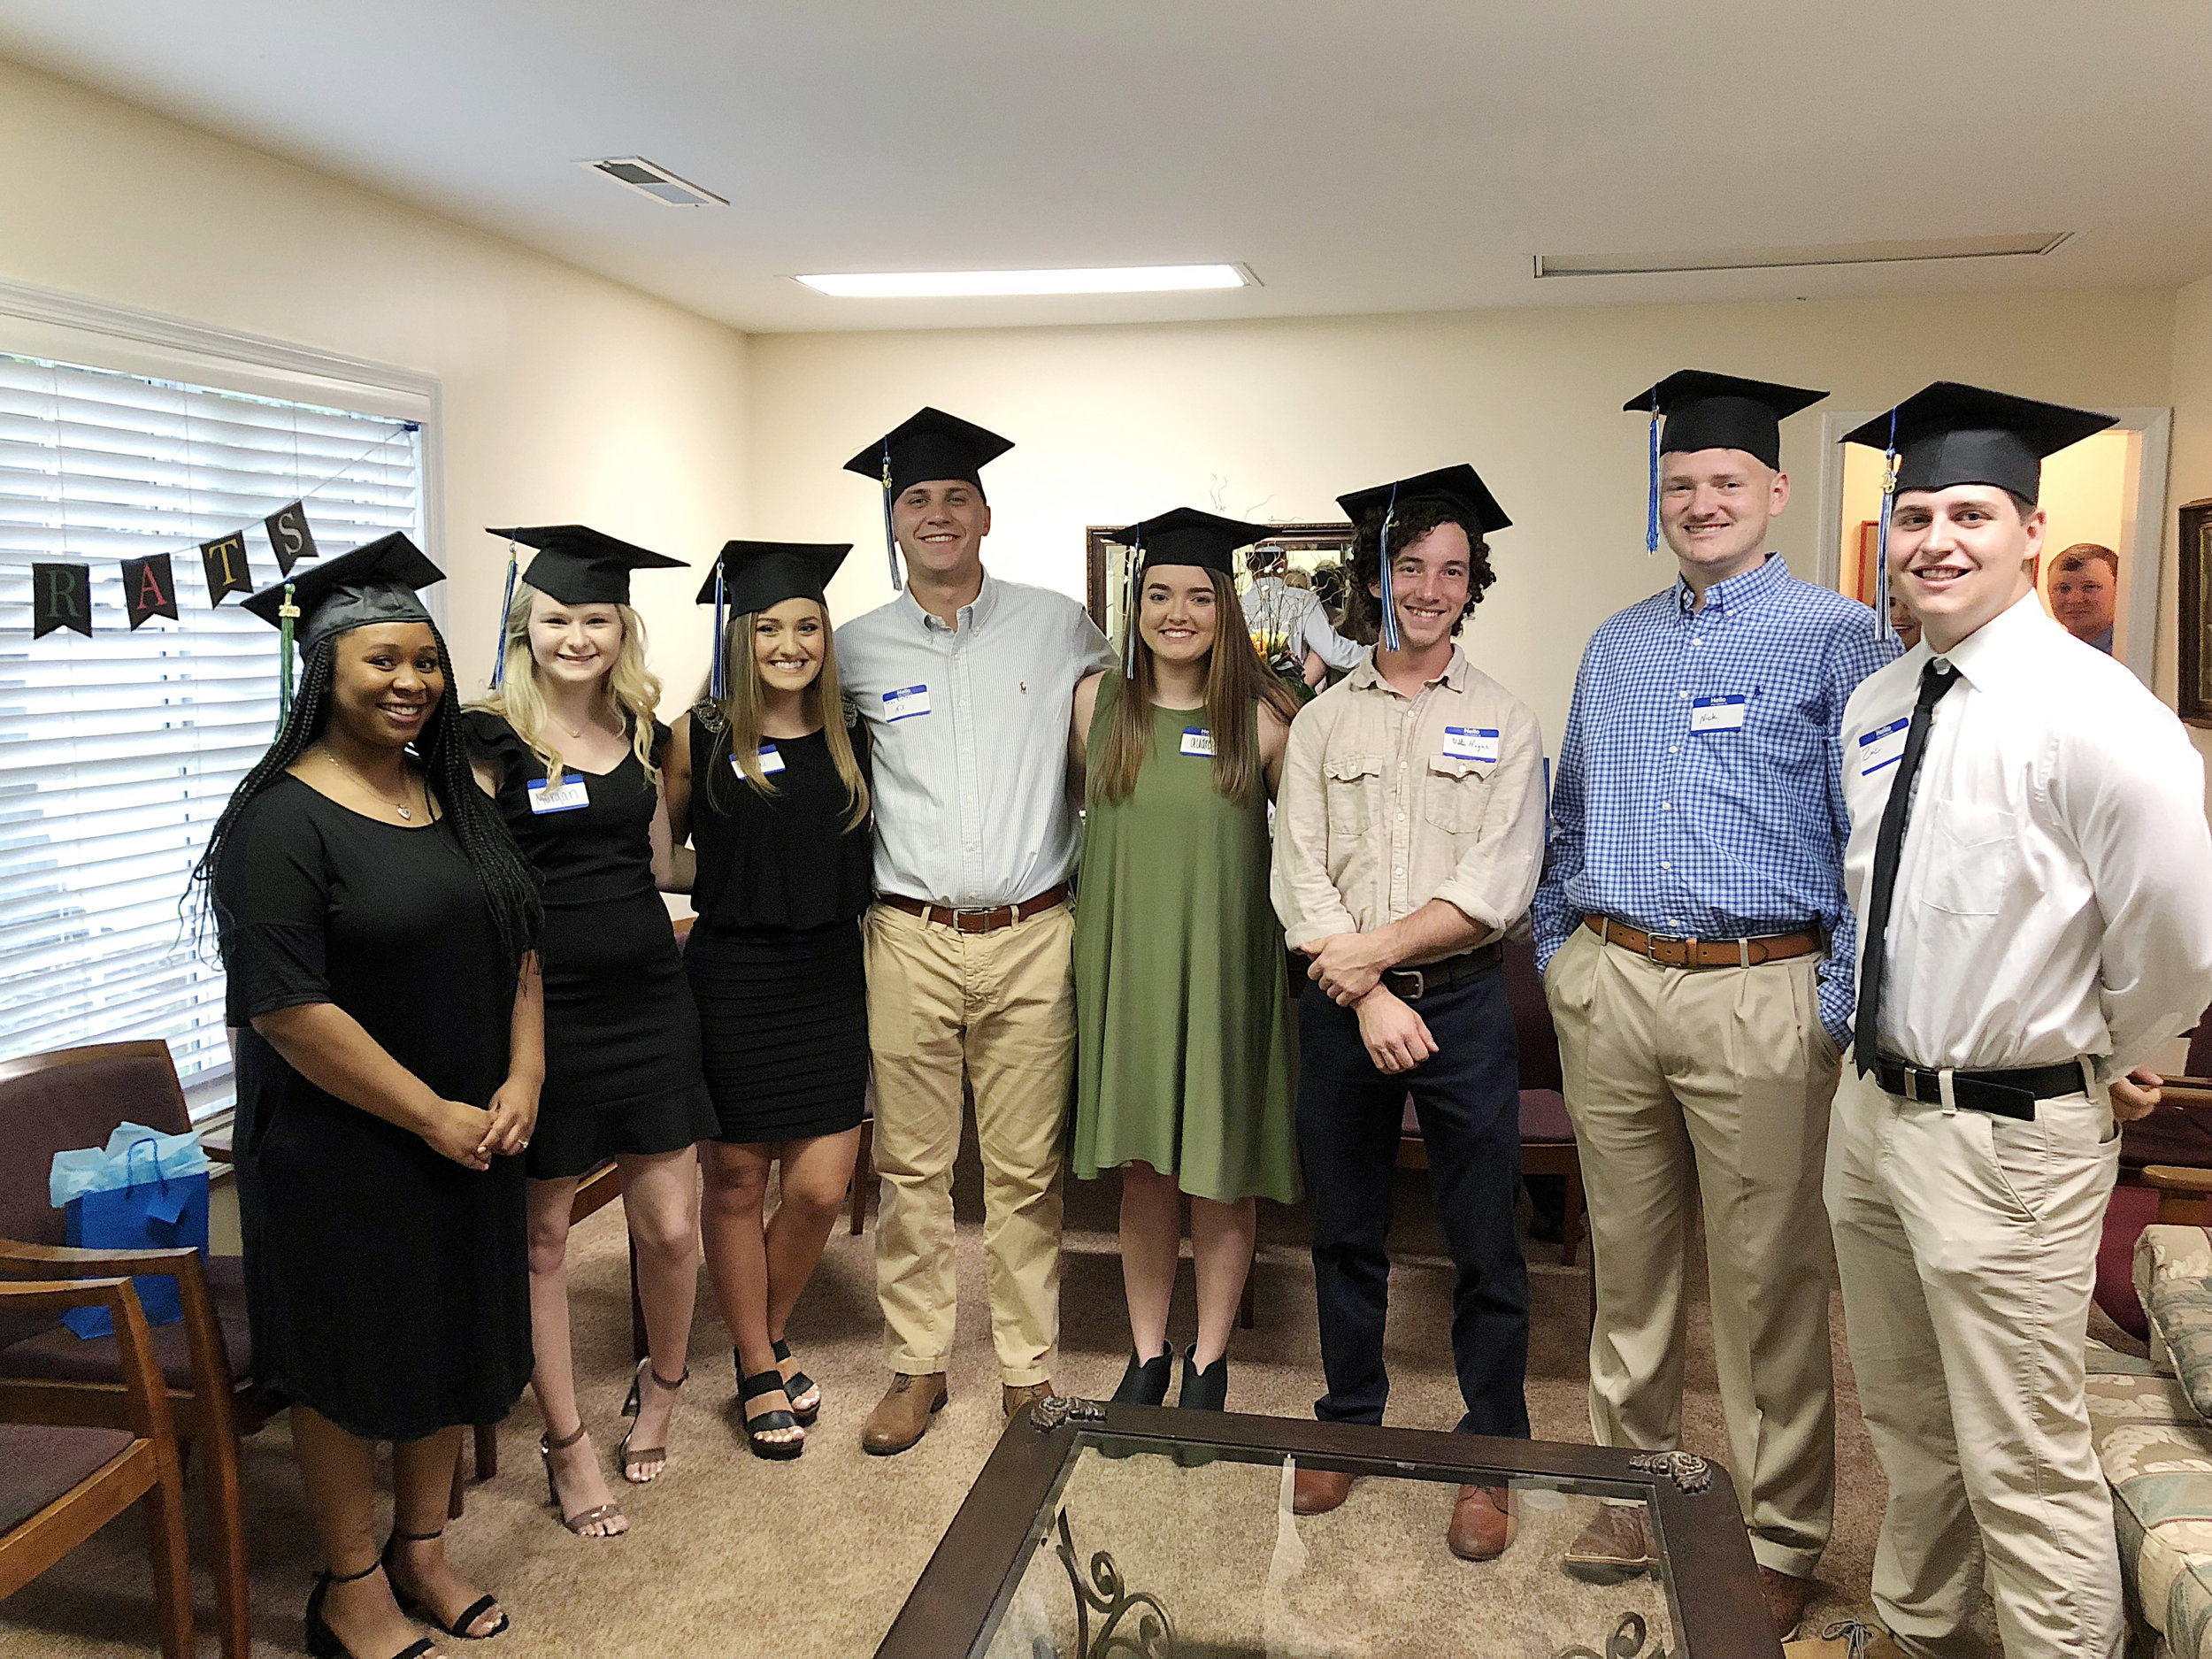 Scholars celebrated 2019 graduation with family and friends at our Graduation Celebration in May. Shown here…Saisha, Morgan, StoriLee, John Rivers, Audrey, Walter, Nick, and Zac.